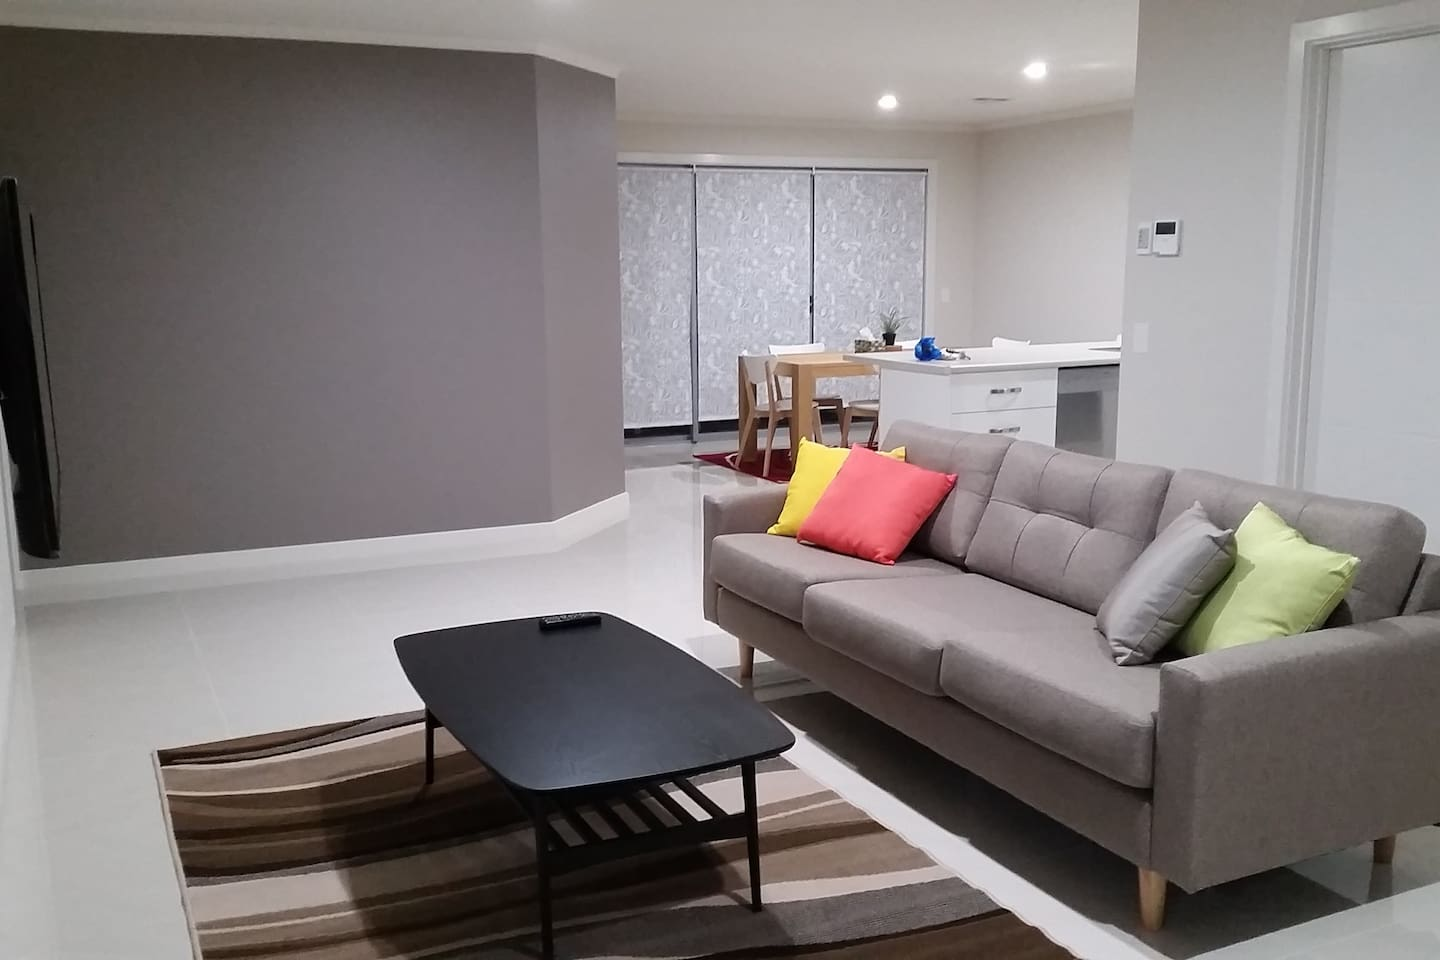 Comfortable dining and living area